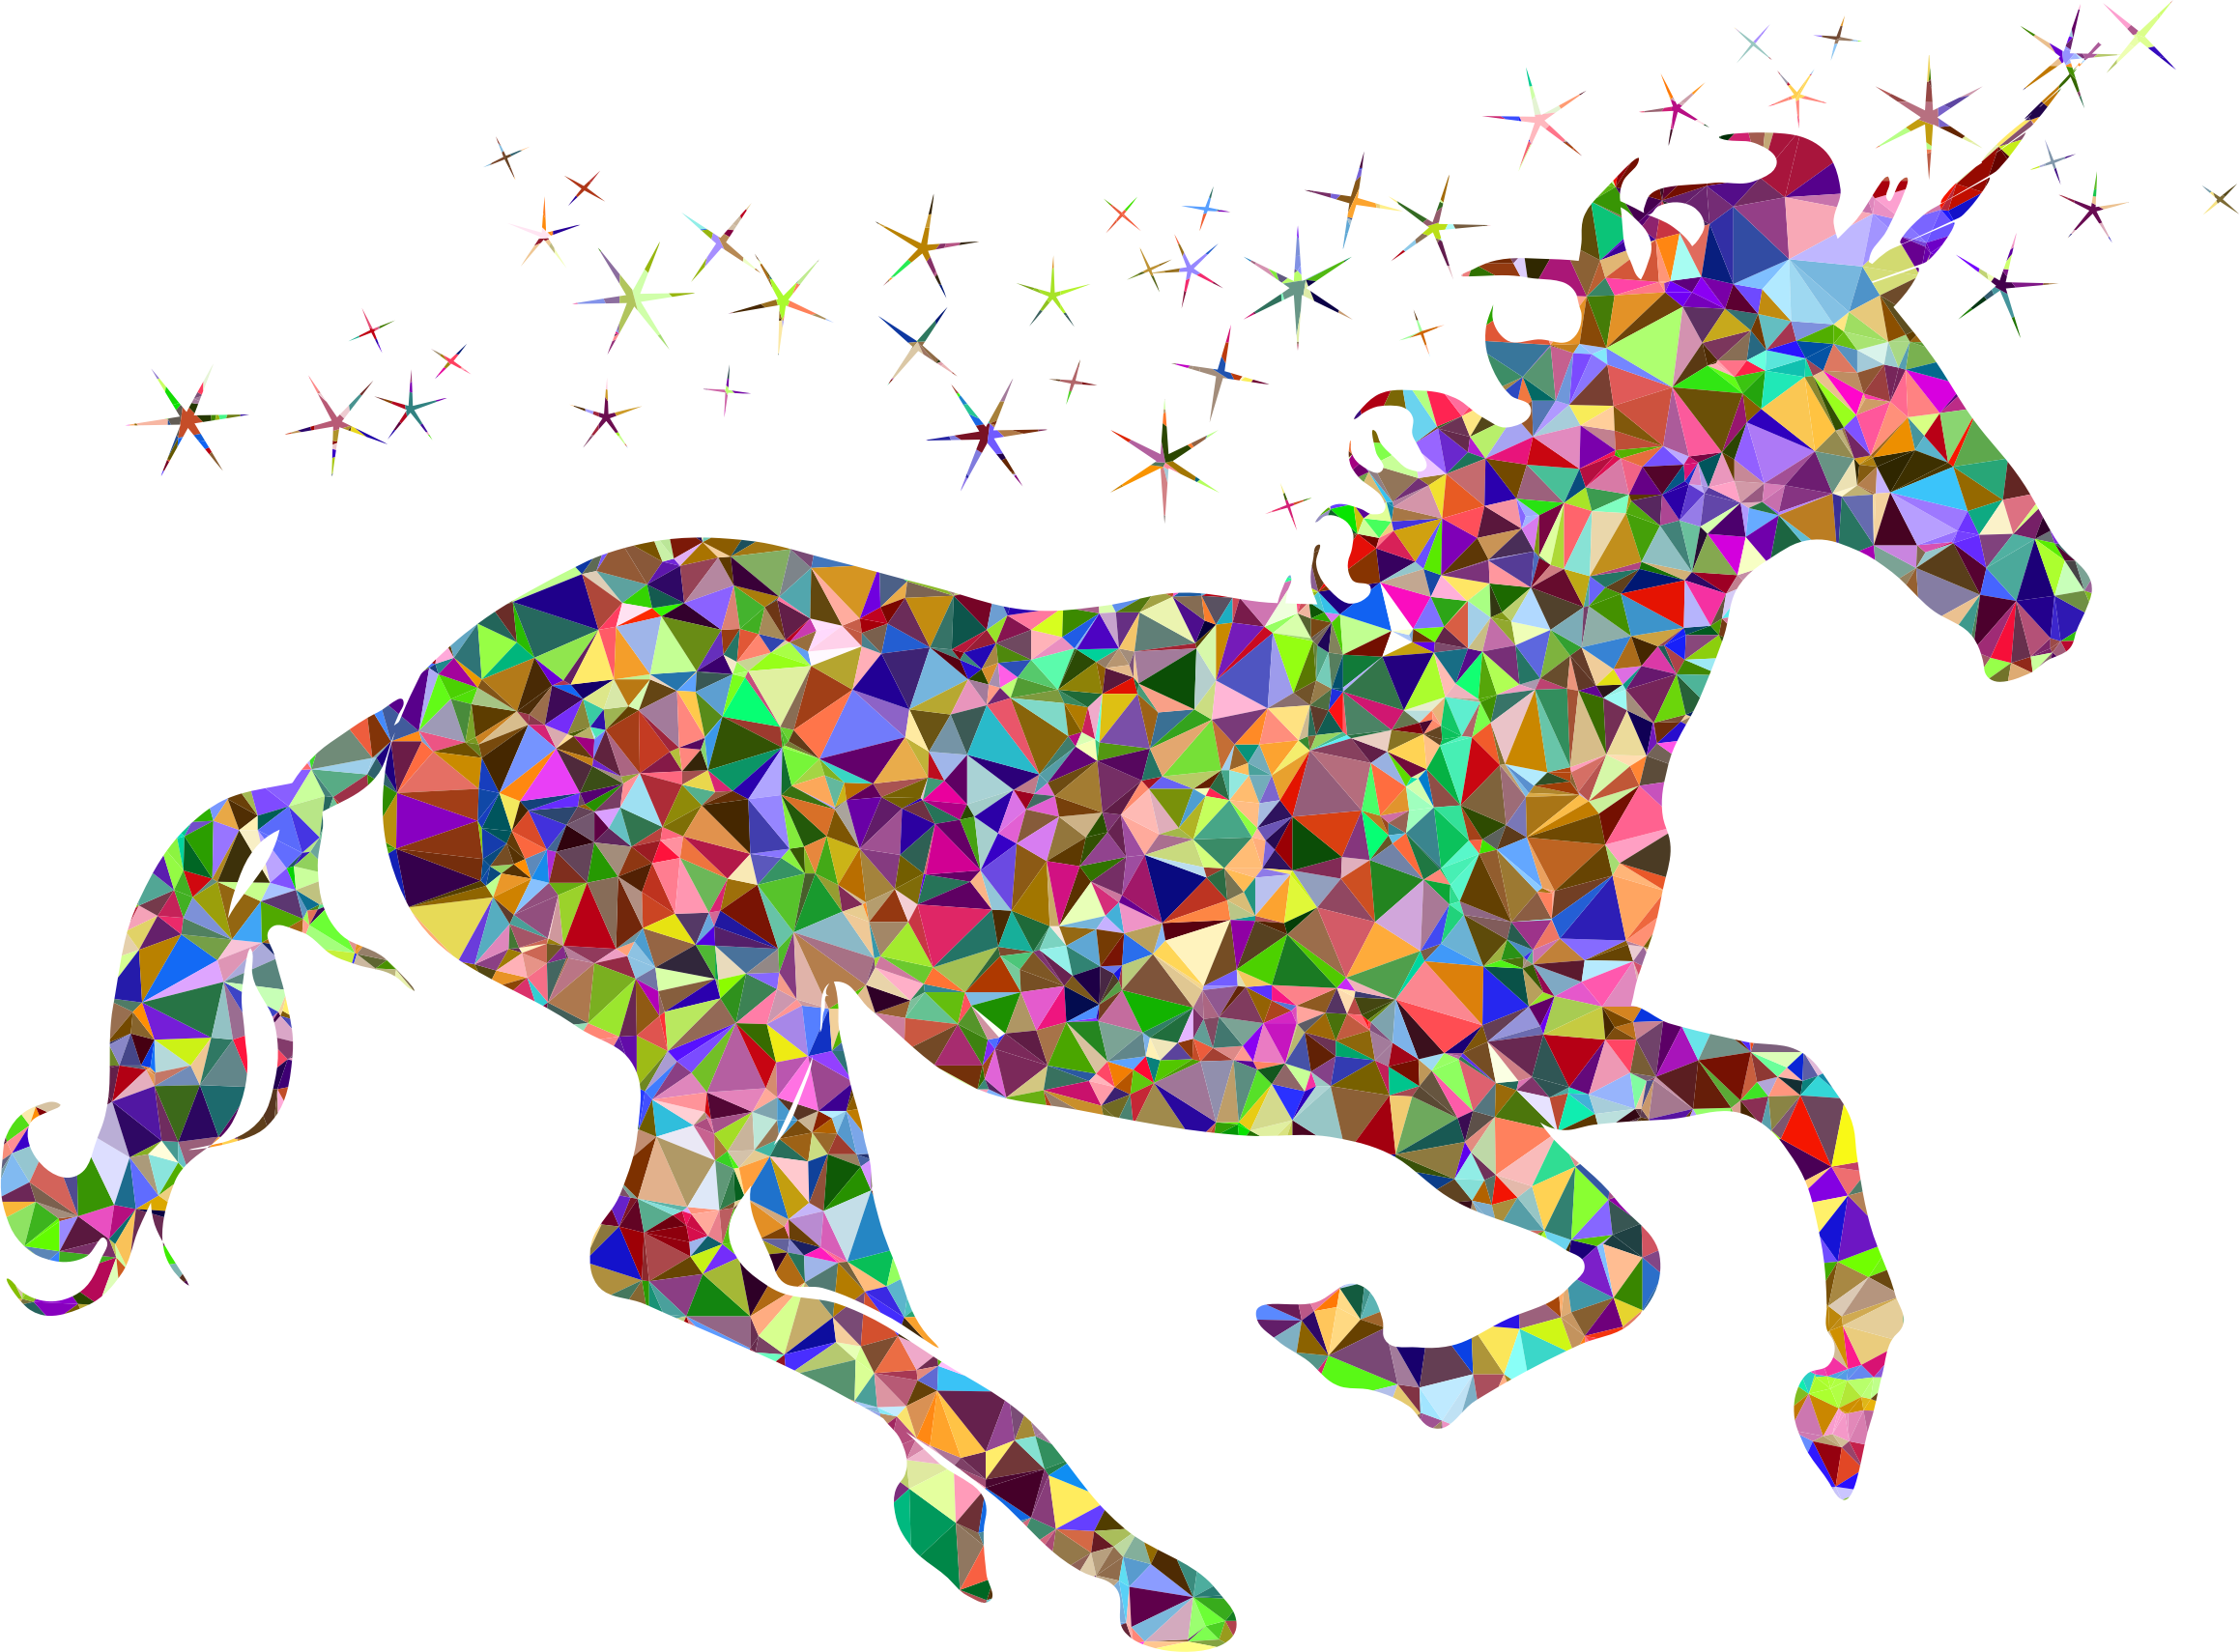 Unicorn picture unicorn clipart unicorns 1 image 2.